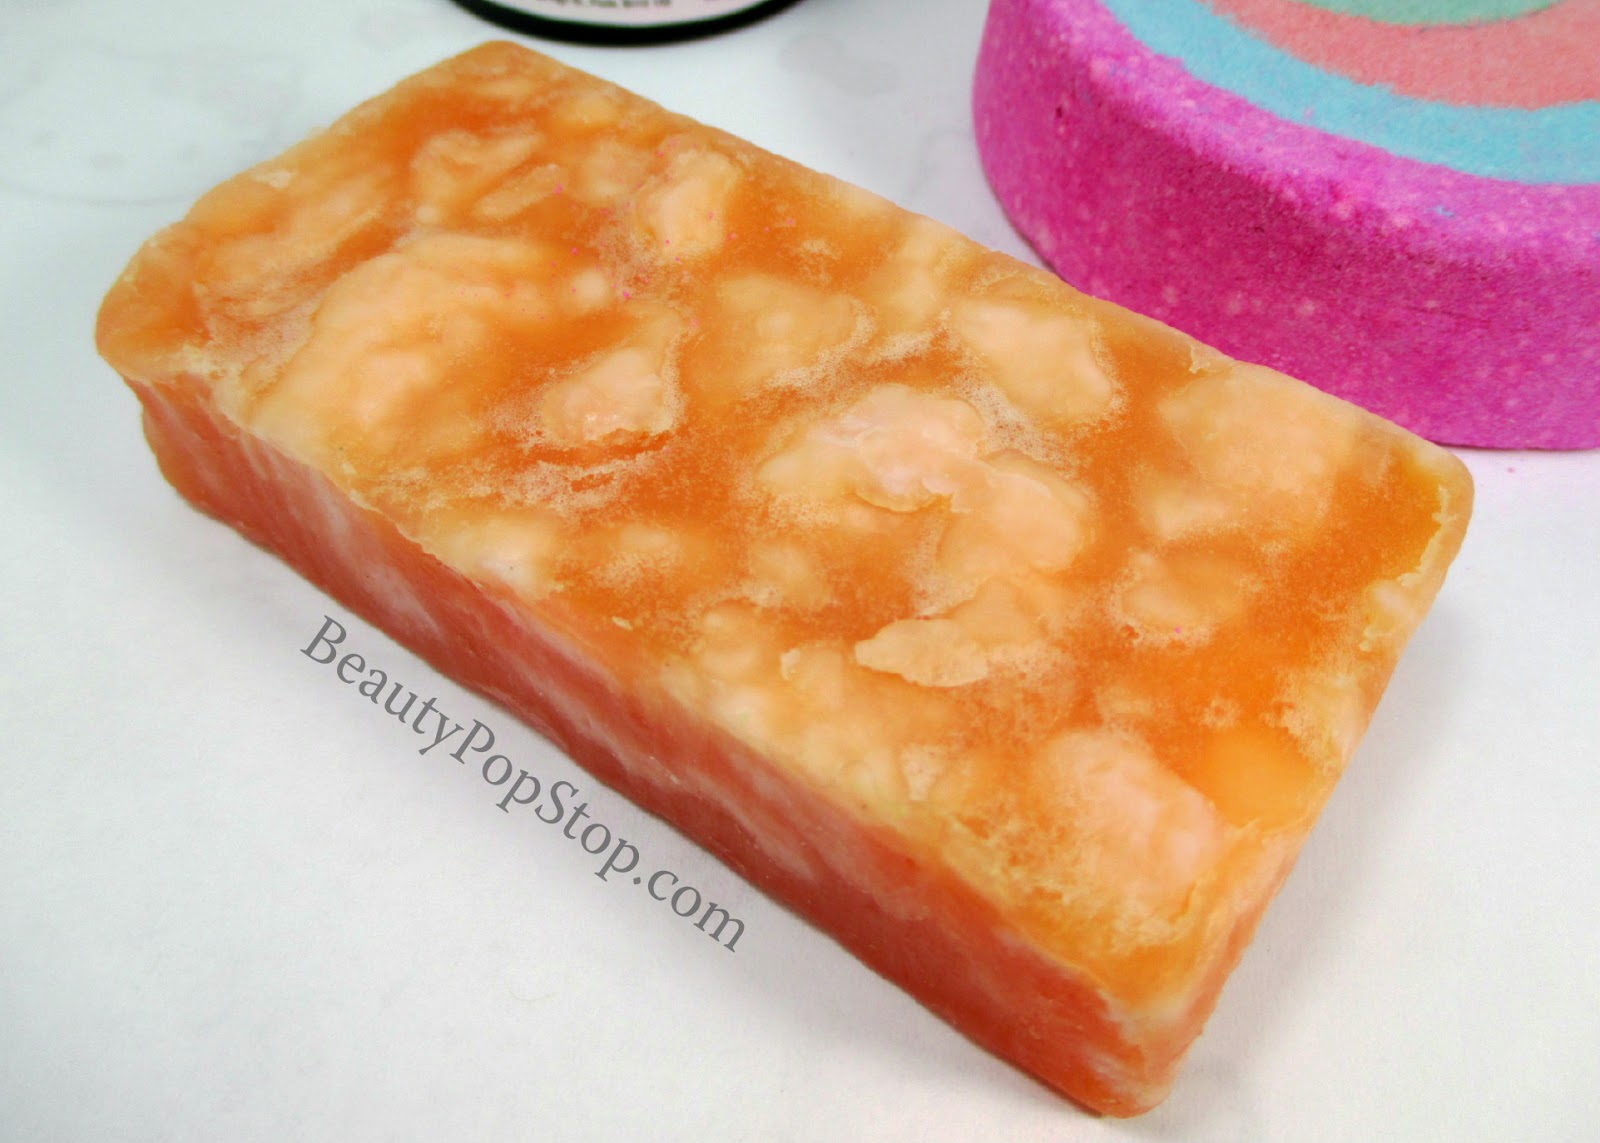 lush magnificent soap review